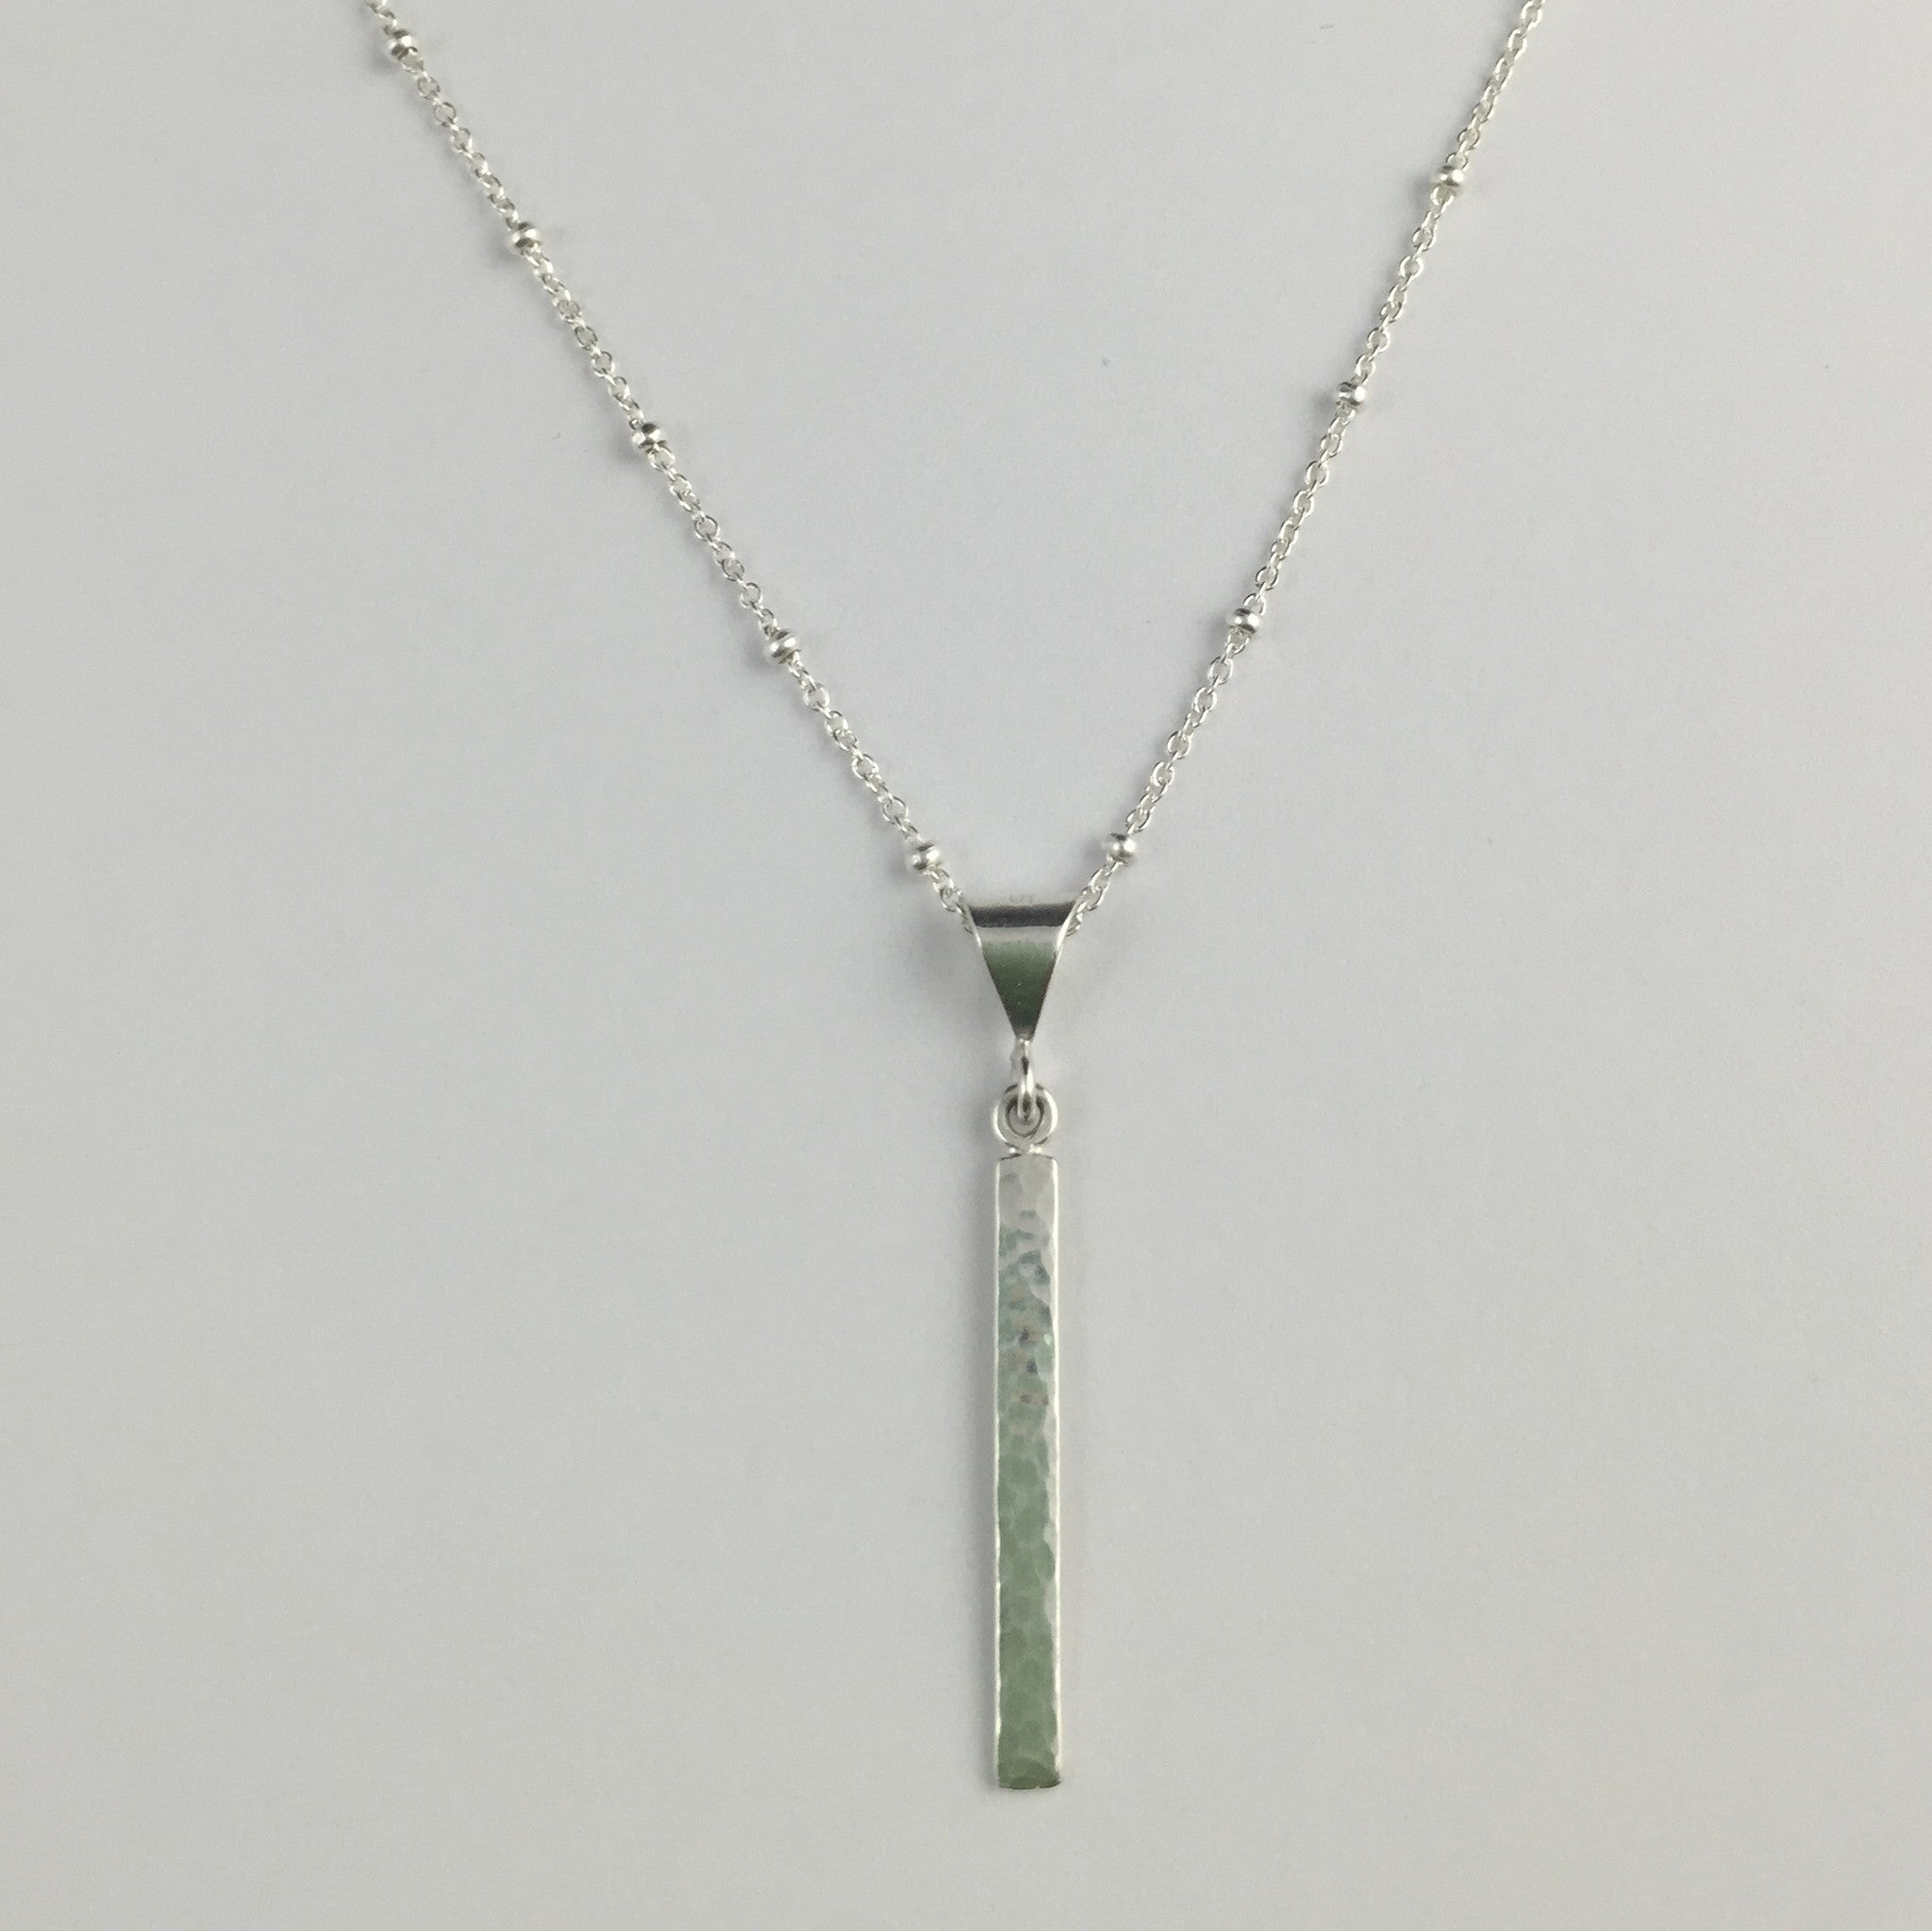 riot twist new lake city products pendant york necklace bar kalaki